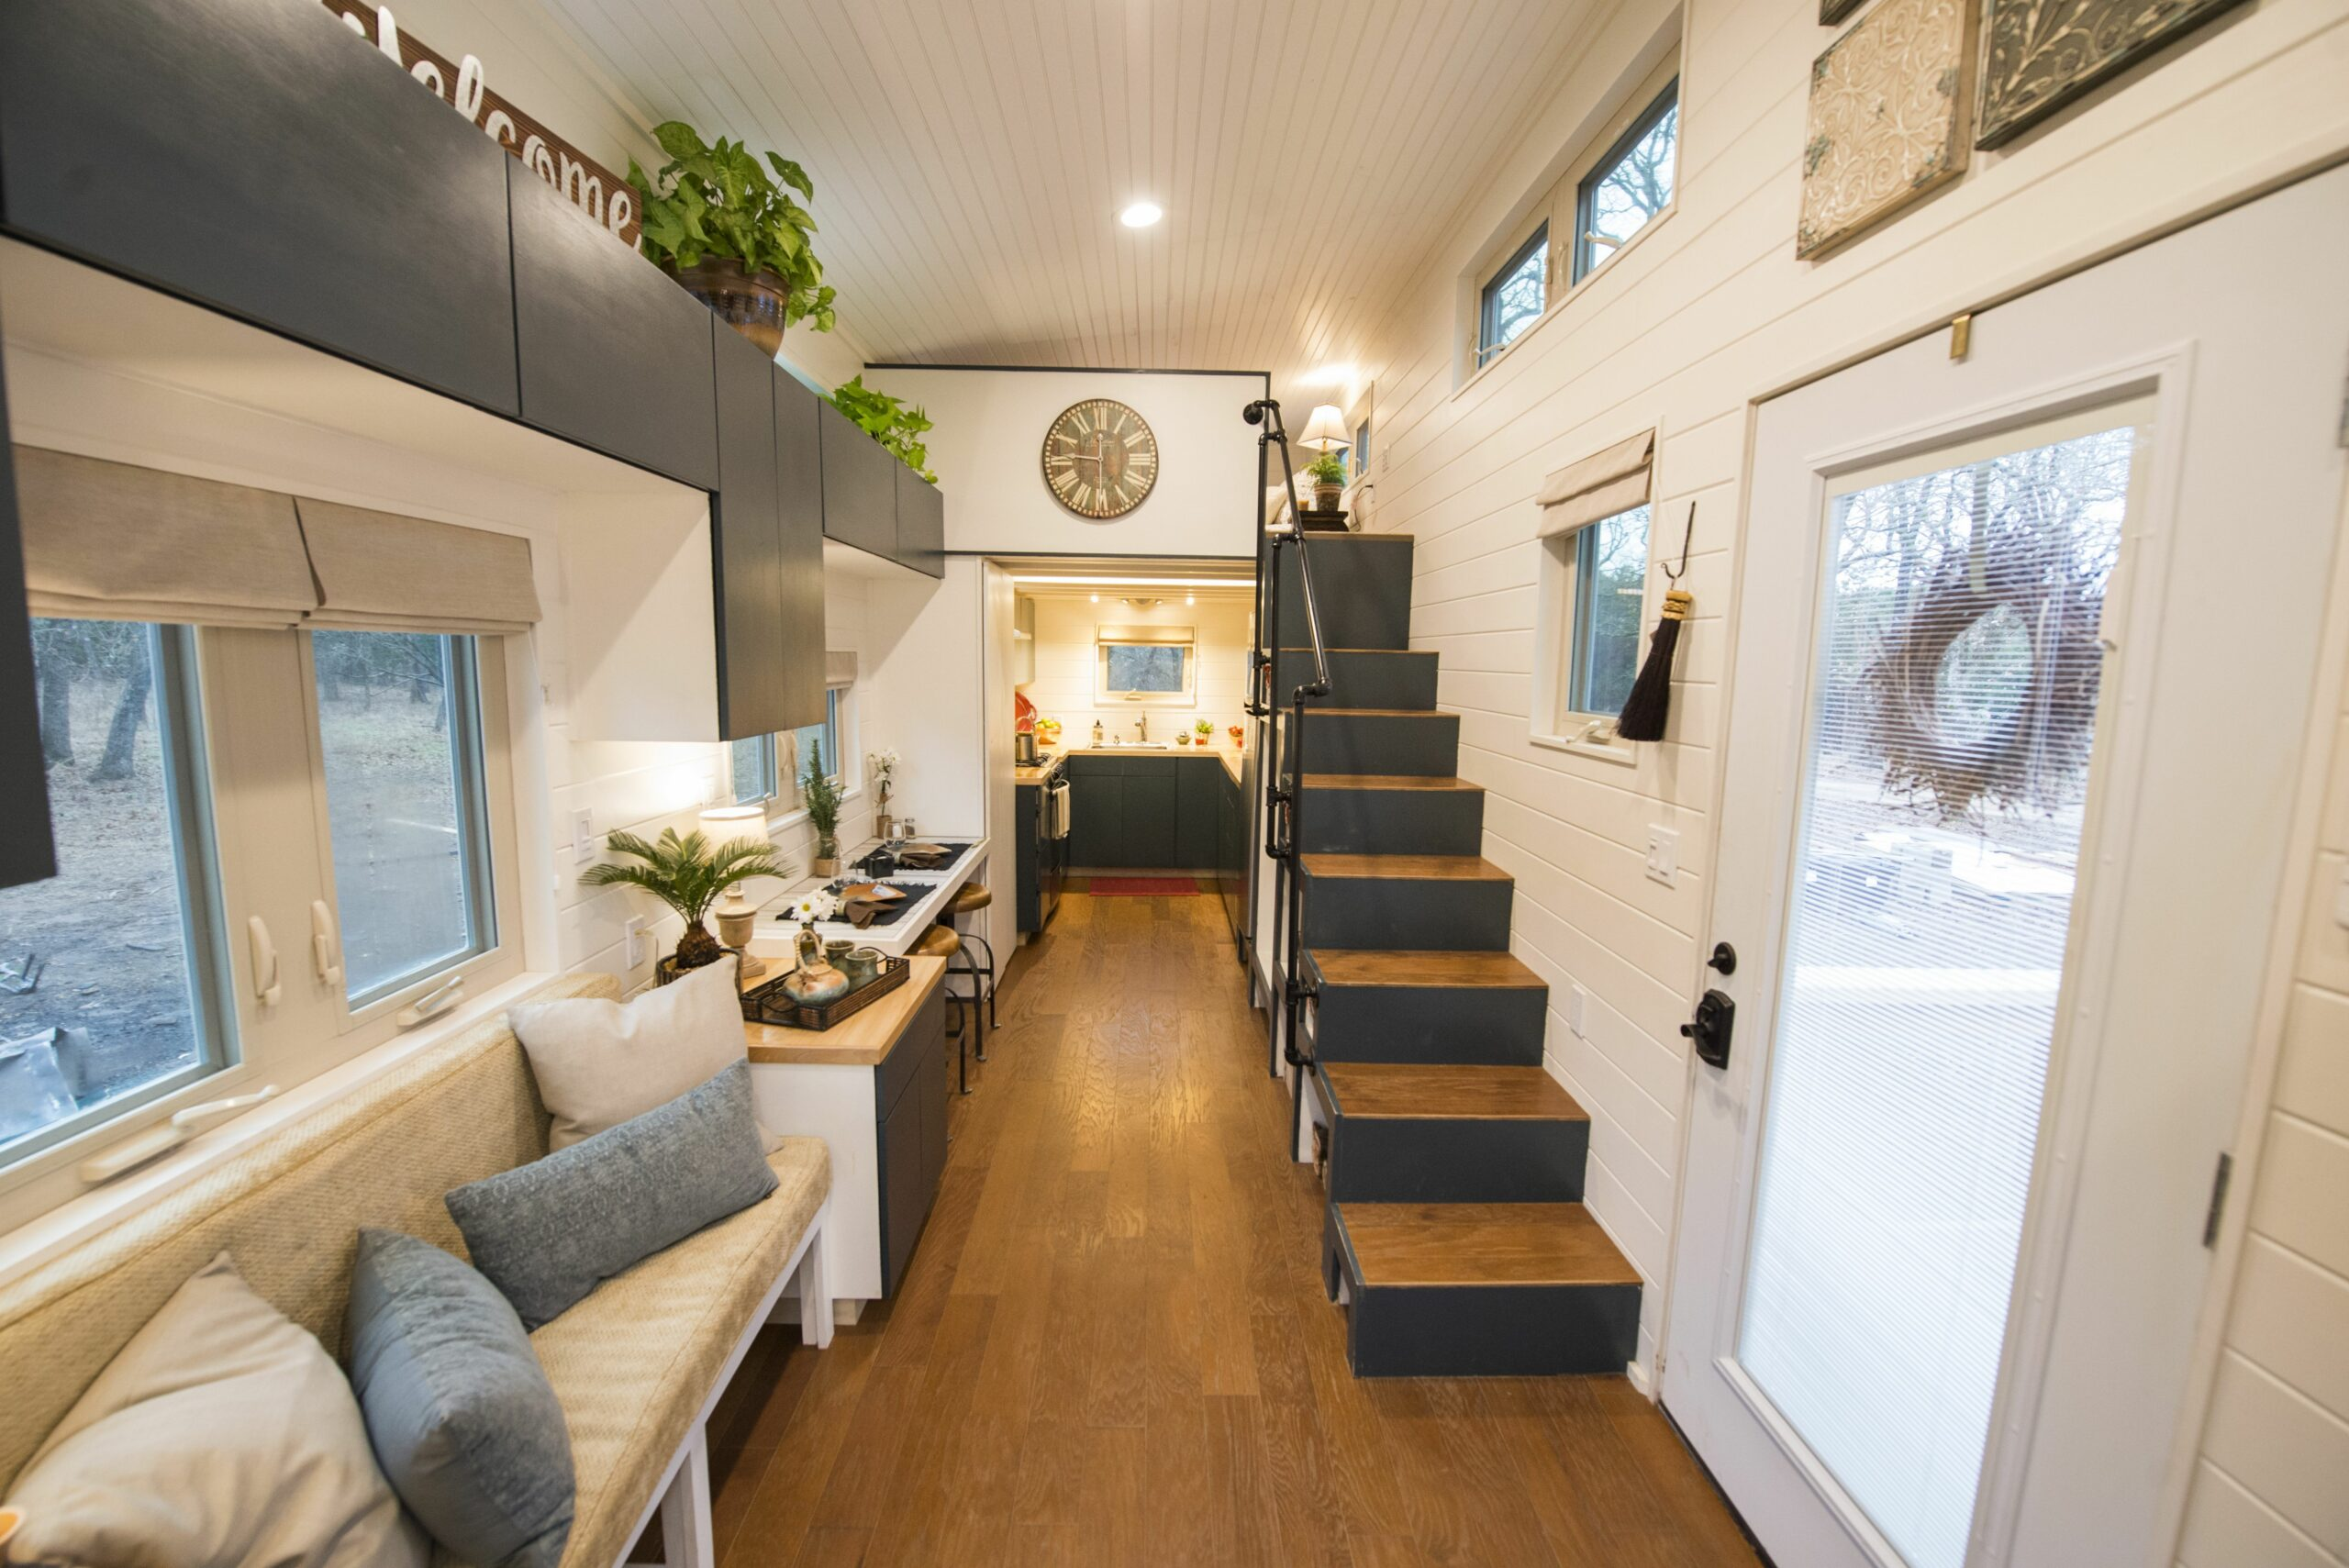 tiny house giveaway Archives - Tiny House Plans